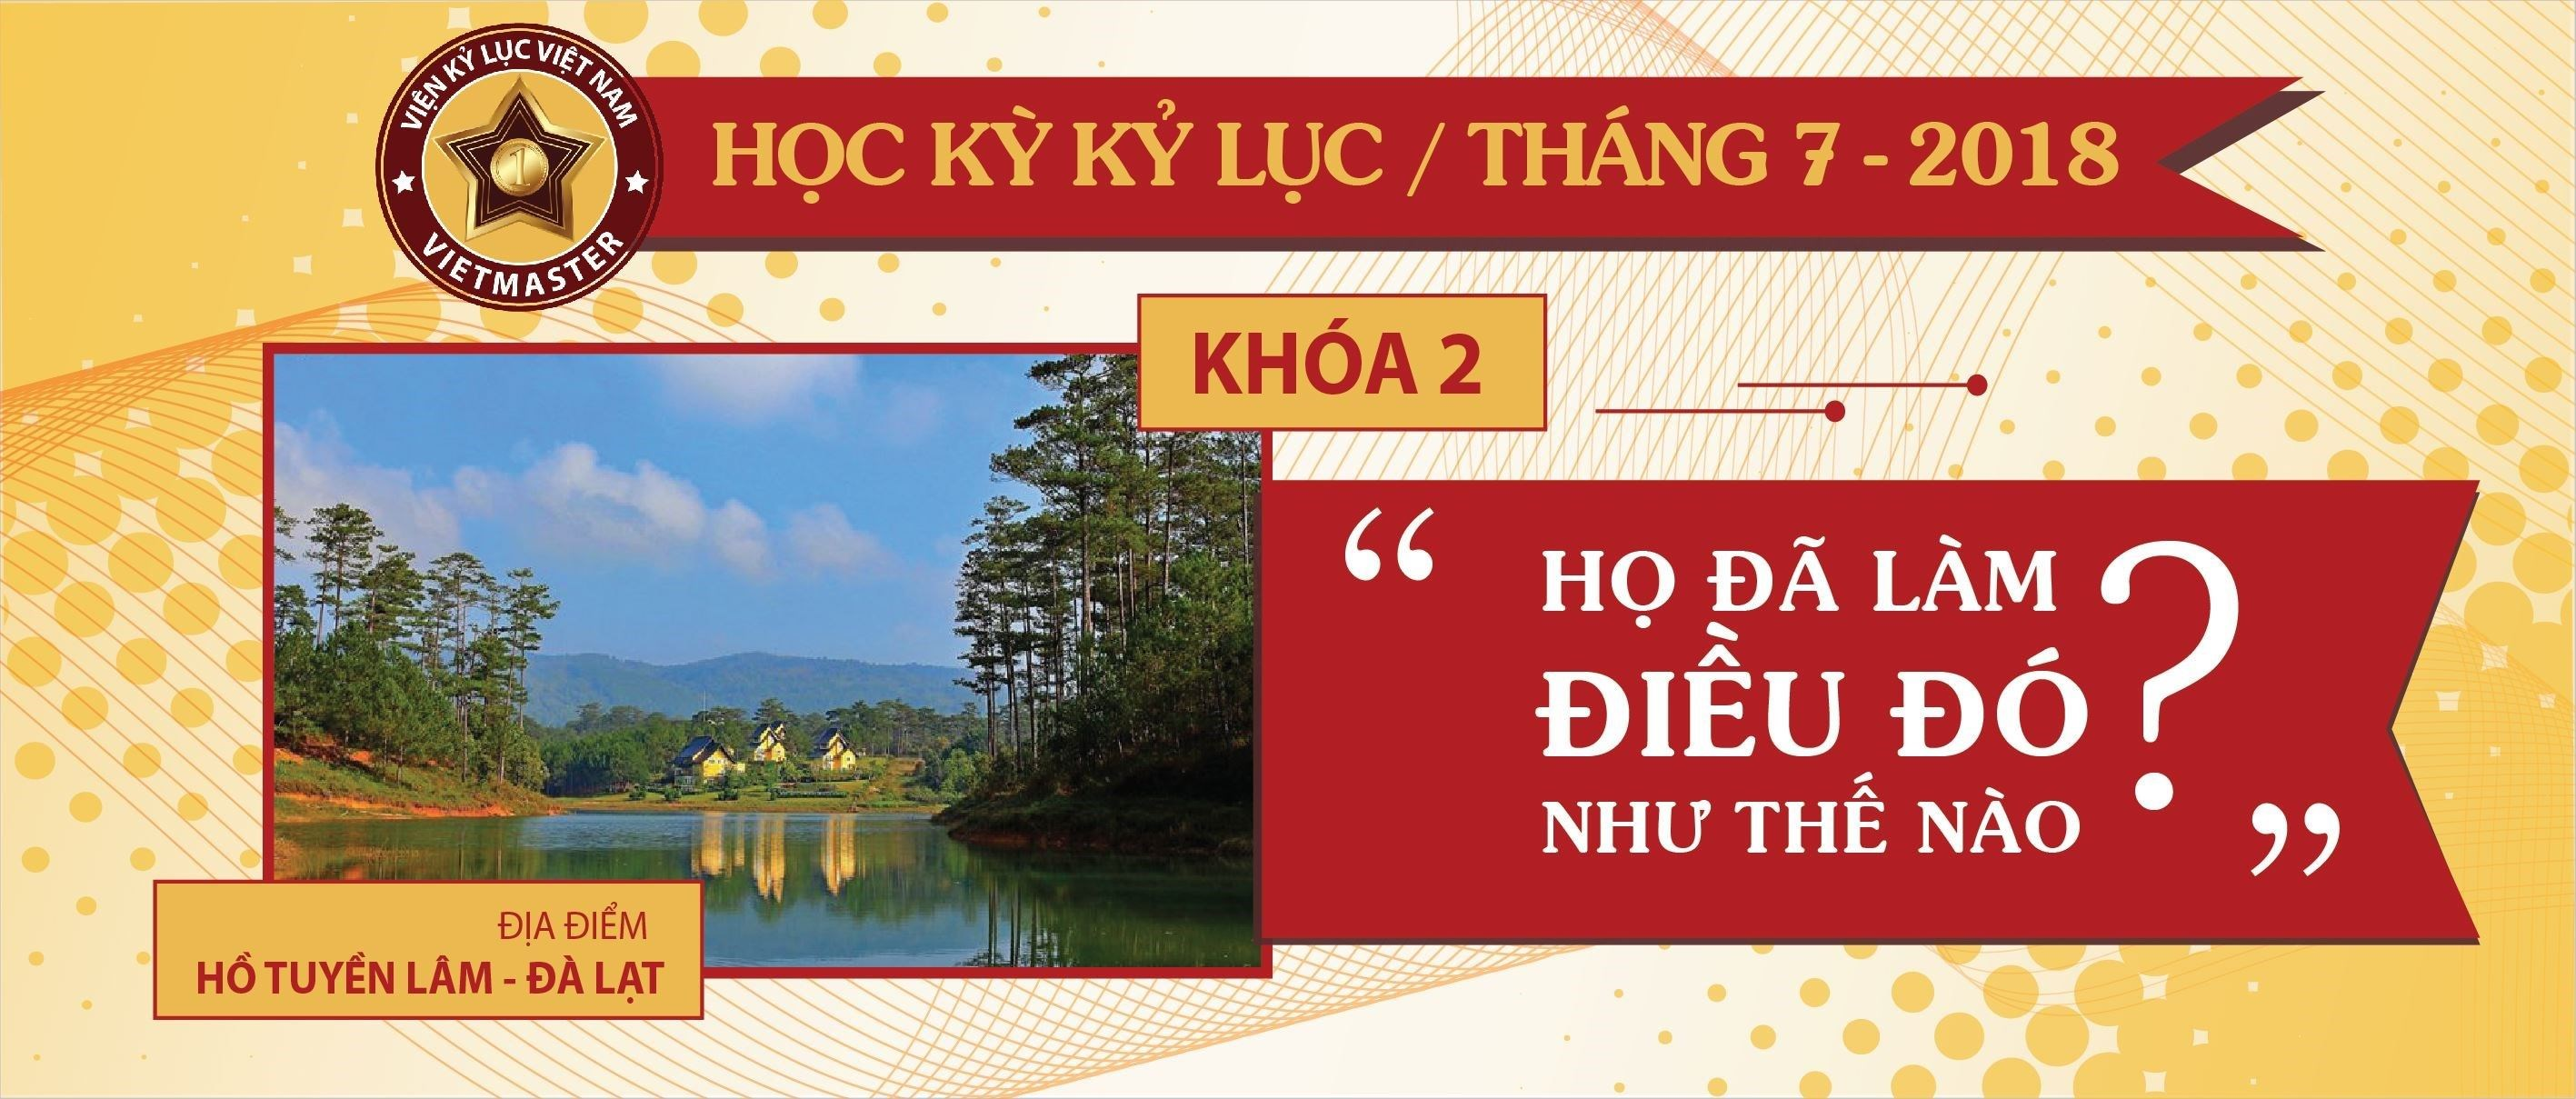 HOC KY KY LUC 2 MOBILE